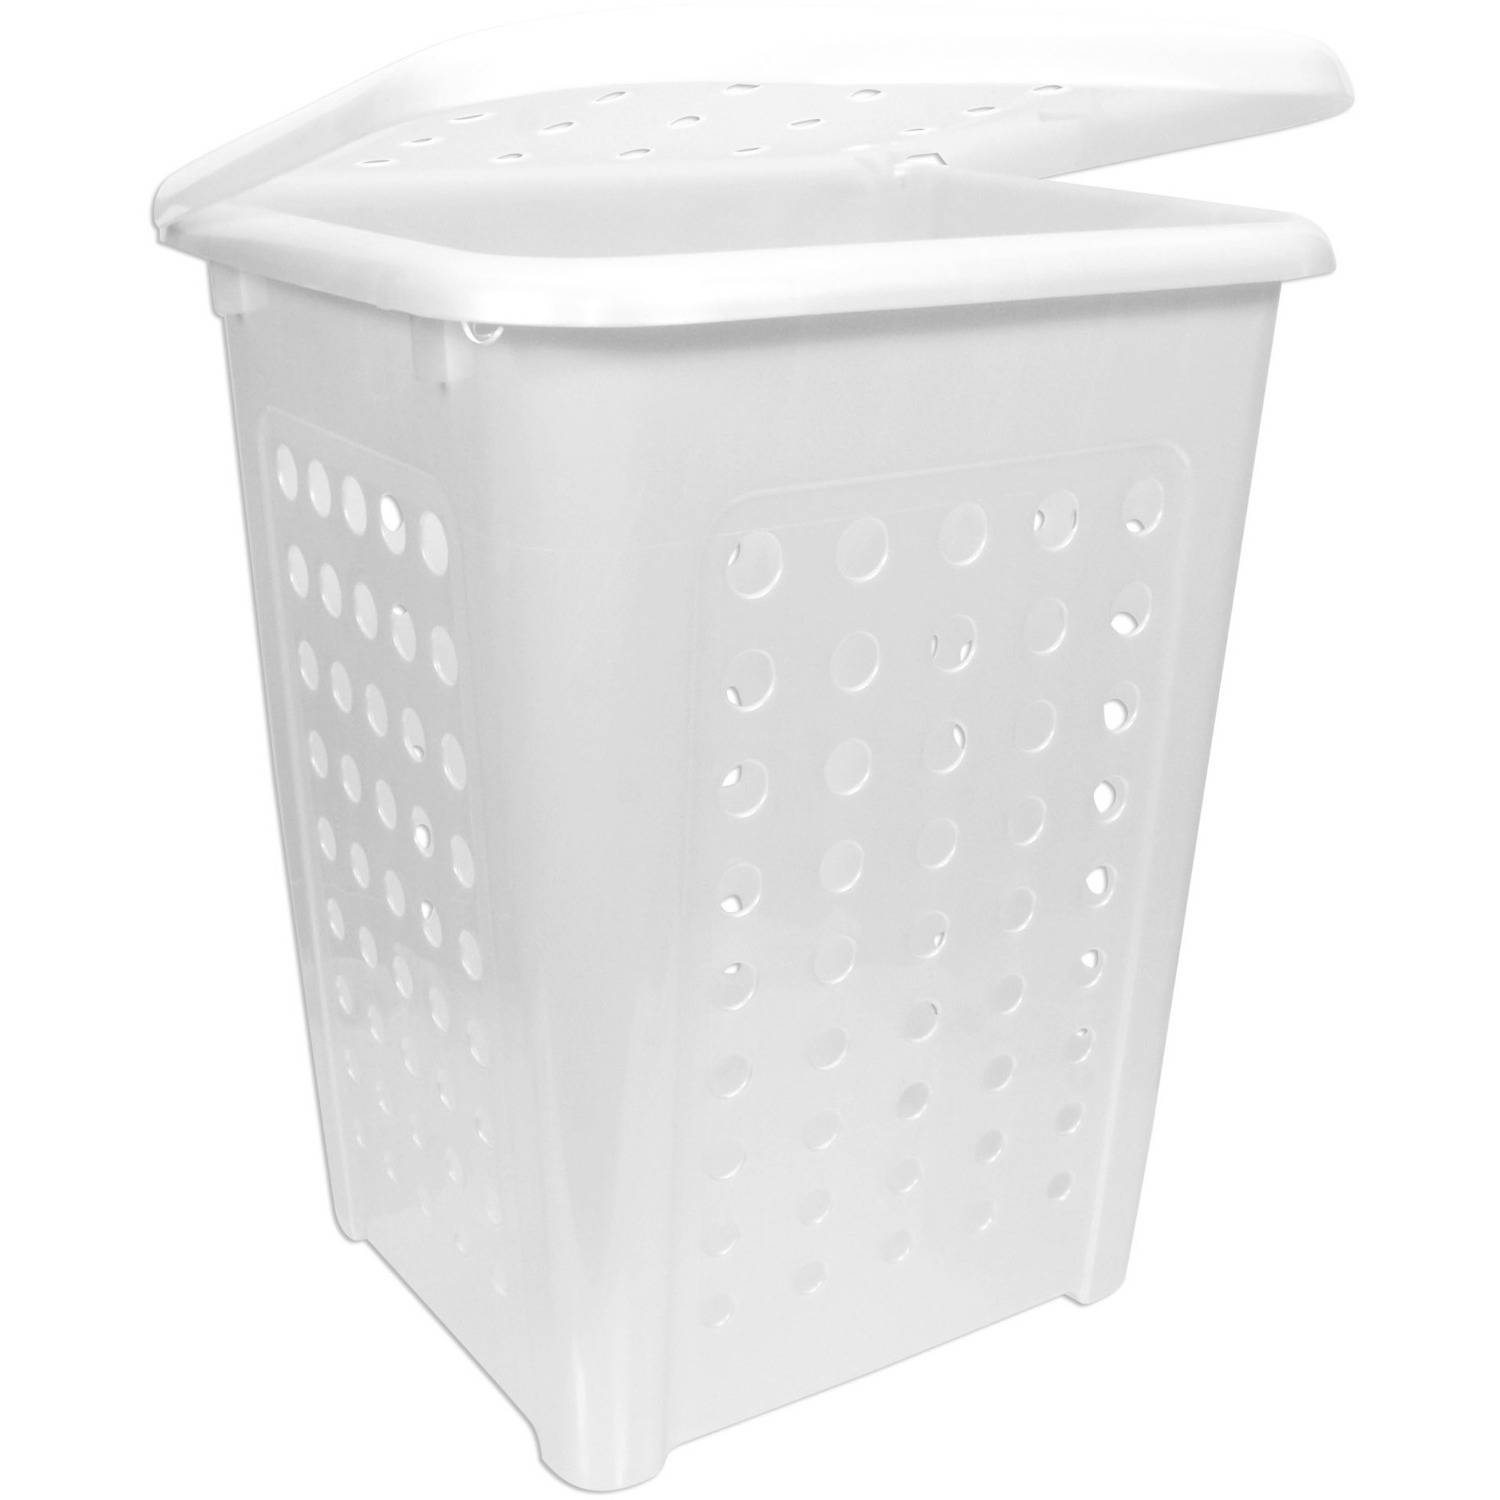 Home Logic 2.2-Bu X-Large Capacity Lidded Laundry H&er White  sc 1 st  Walmart & Laundry Organization - Walmart.com Aboutintivar.Com